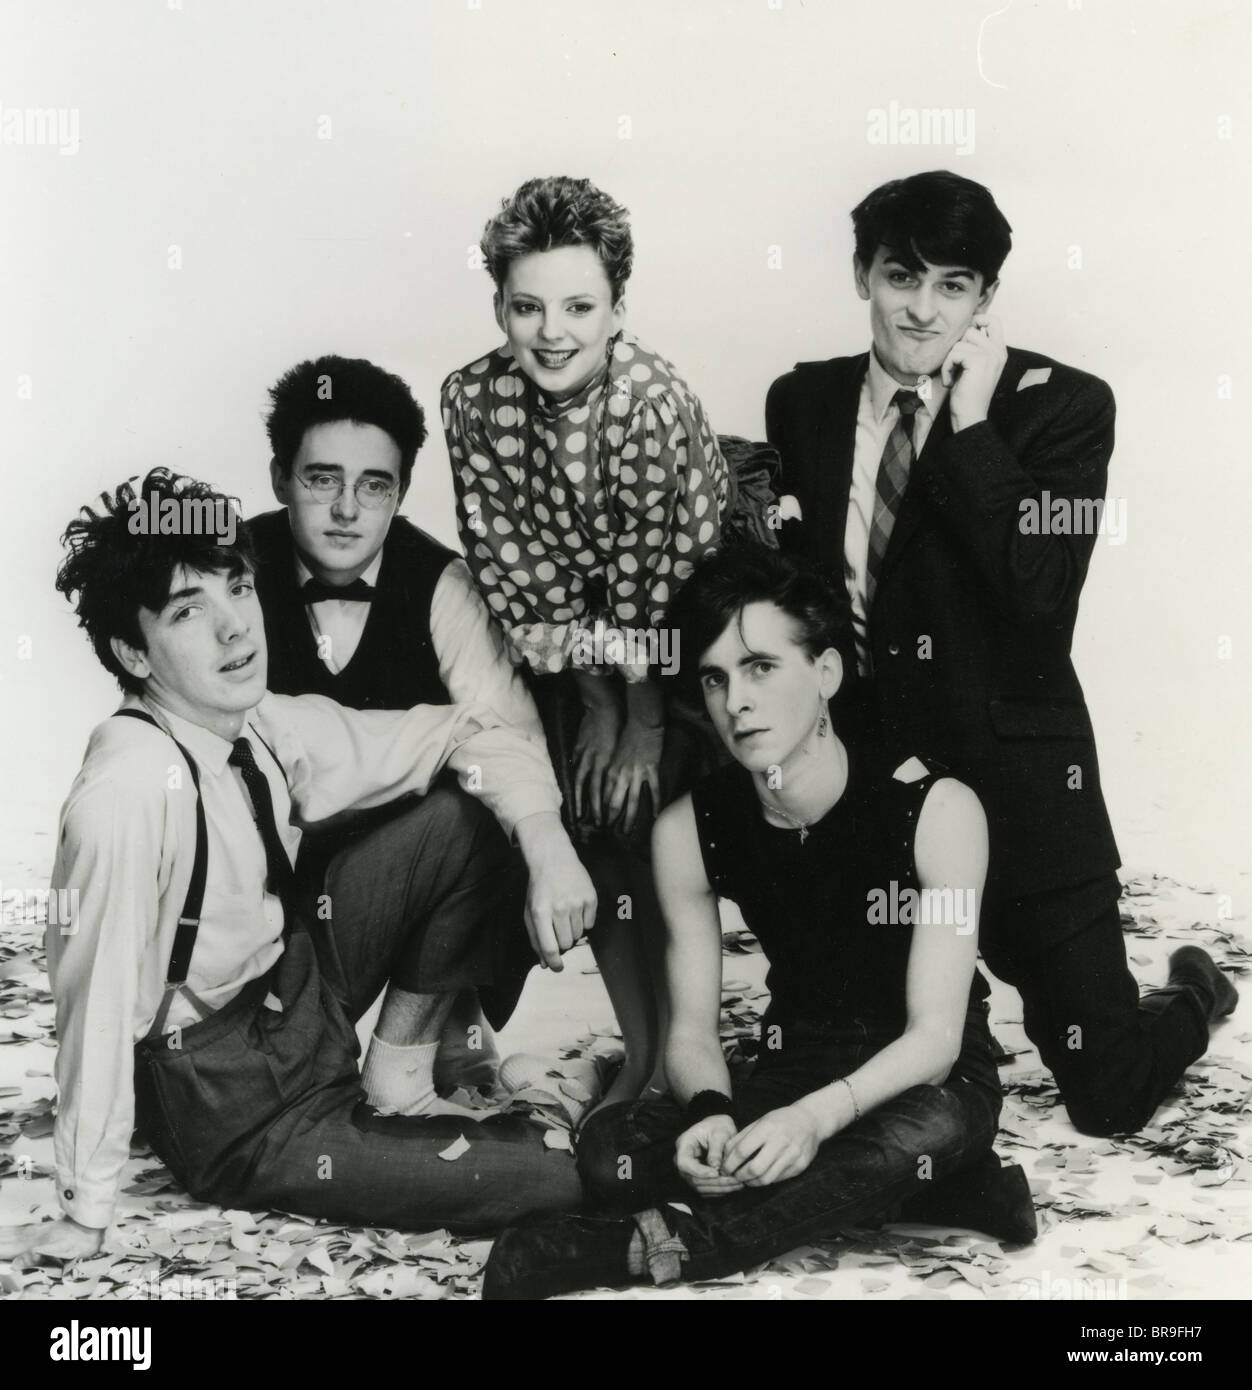 ALTERED IMAGES photo promotionnelle de 1980 New Wave Group écossais avec chanteur Clare Grogan Photo Stock